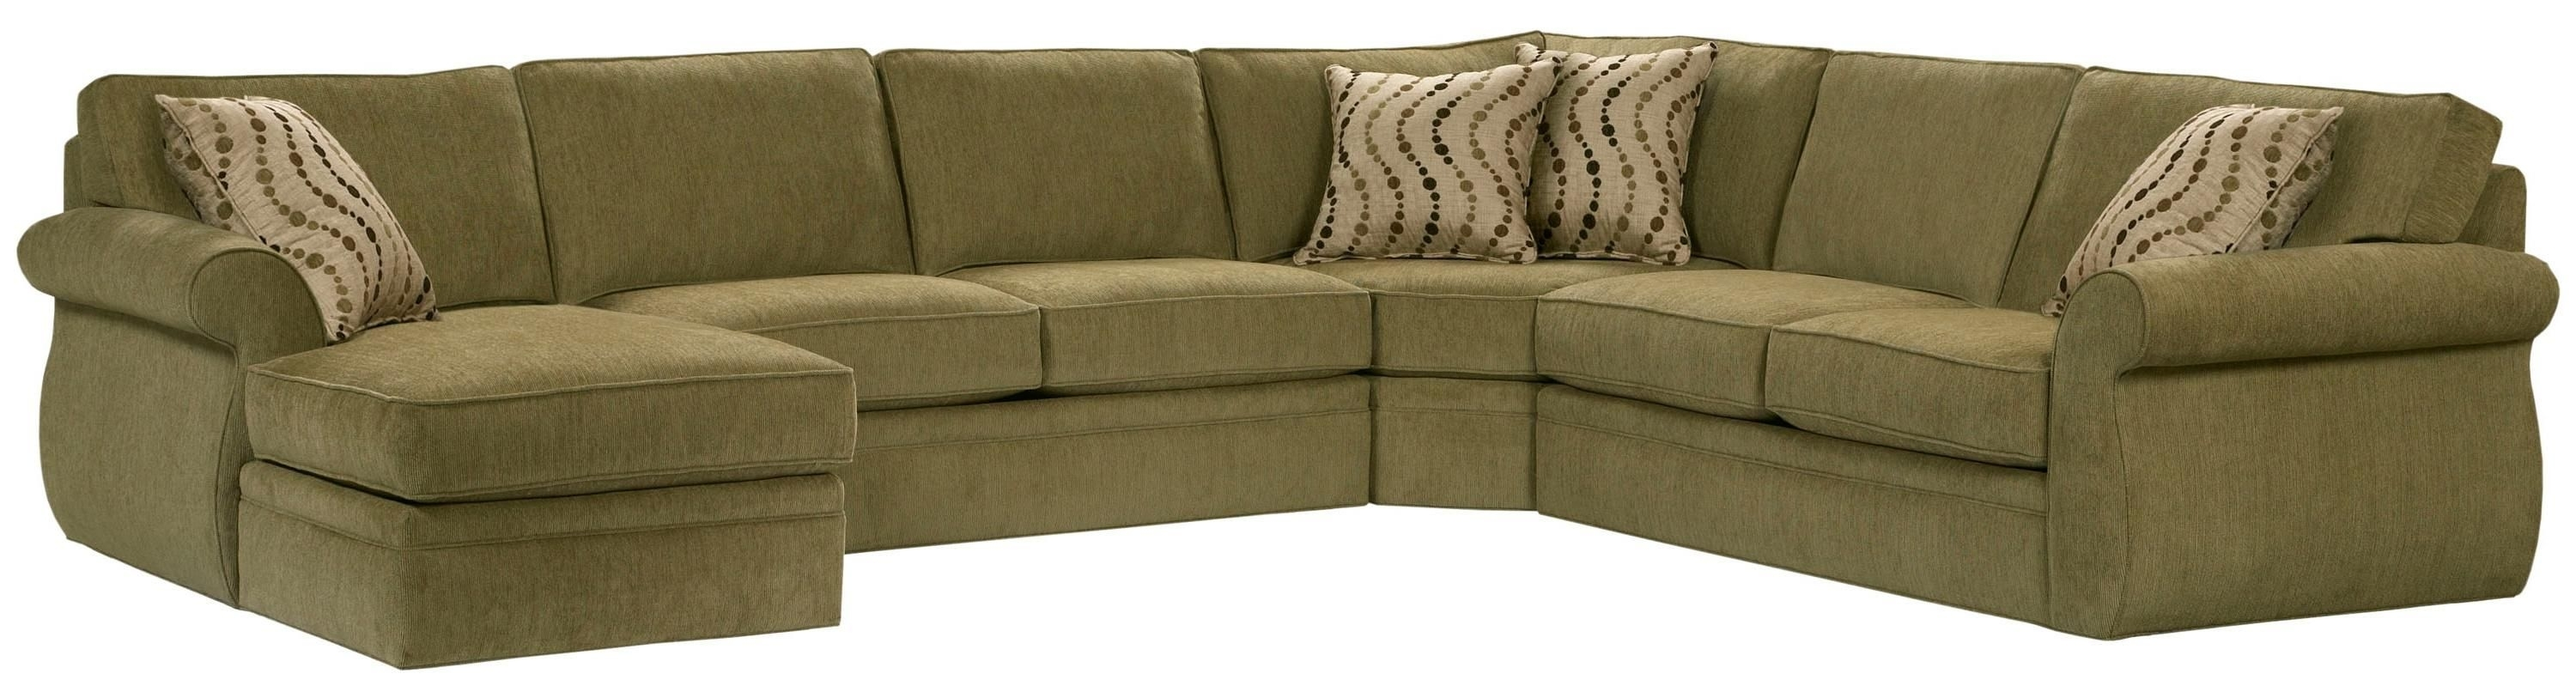 Pin Christina Kingsberry Family Room Ideas Sectional Couch Basement Regarding Lucy Grey 2 Piece Sectionals With Raf Chaise (Image 19 of 25)